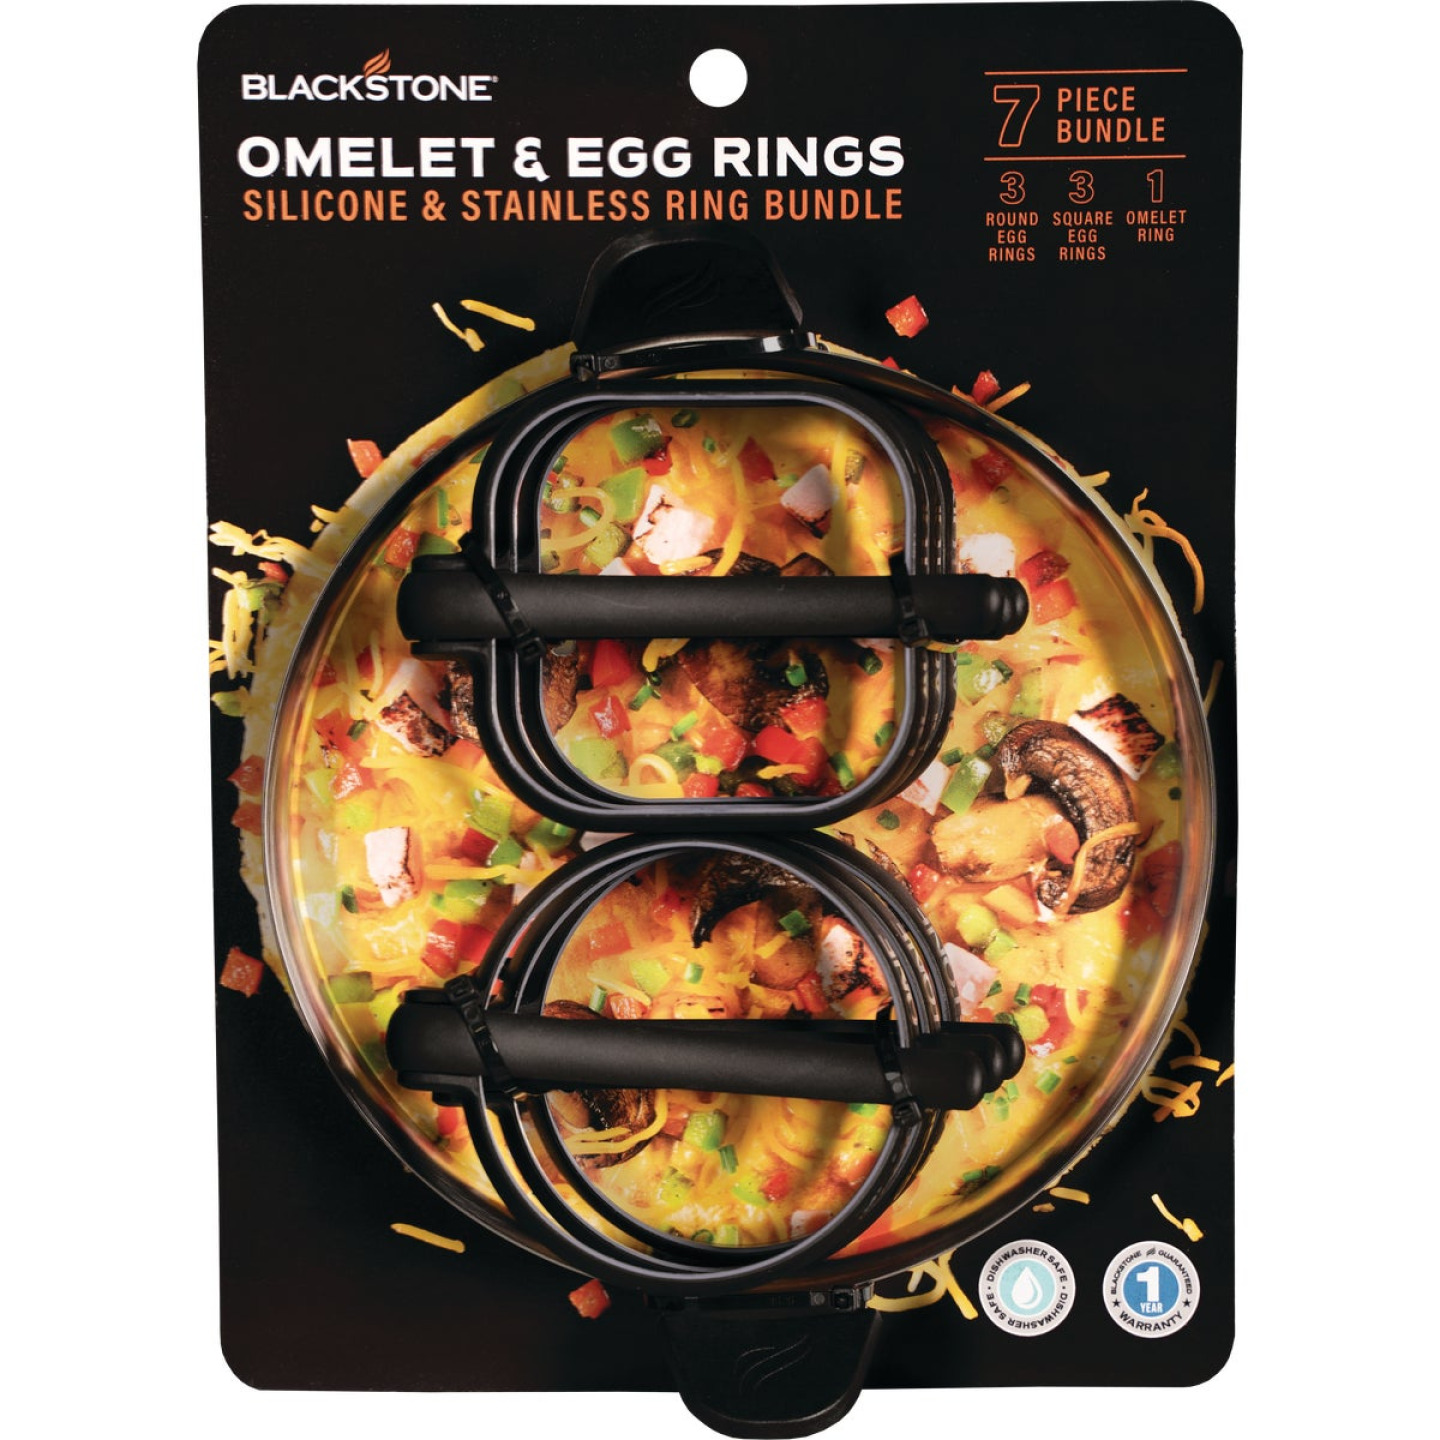 Blackstone Silicone Egg Ring and Omelette Ring 8-Piece Tool Set Image 1